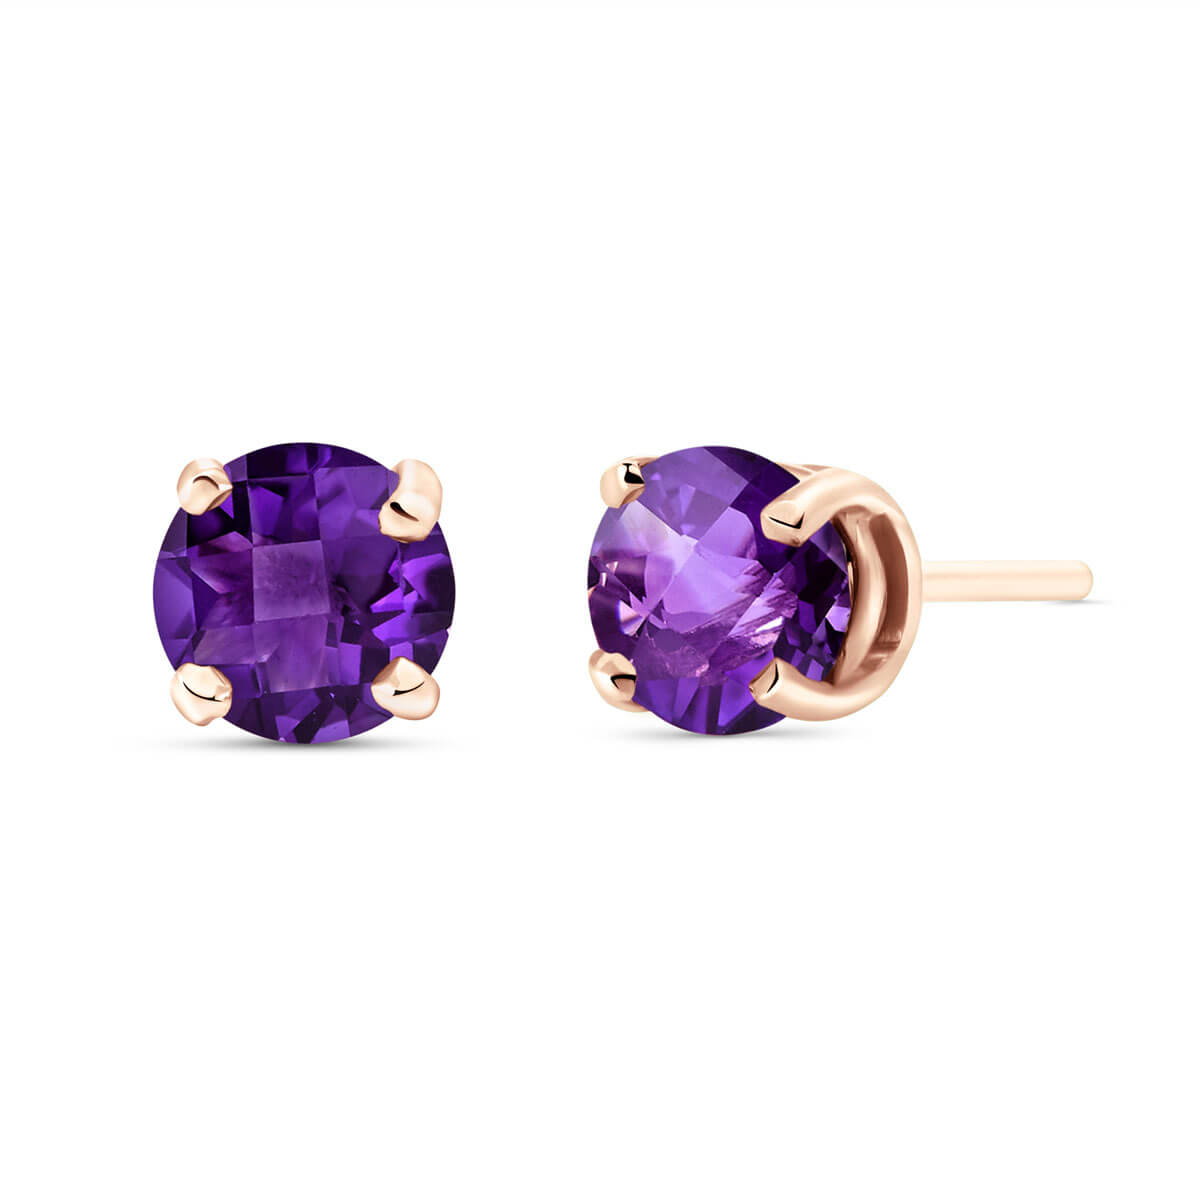 Amethyst Stud Earrings 0.95 ctw in 9ct Rose Gold